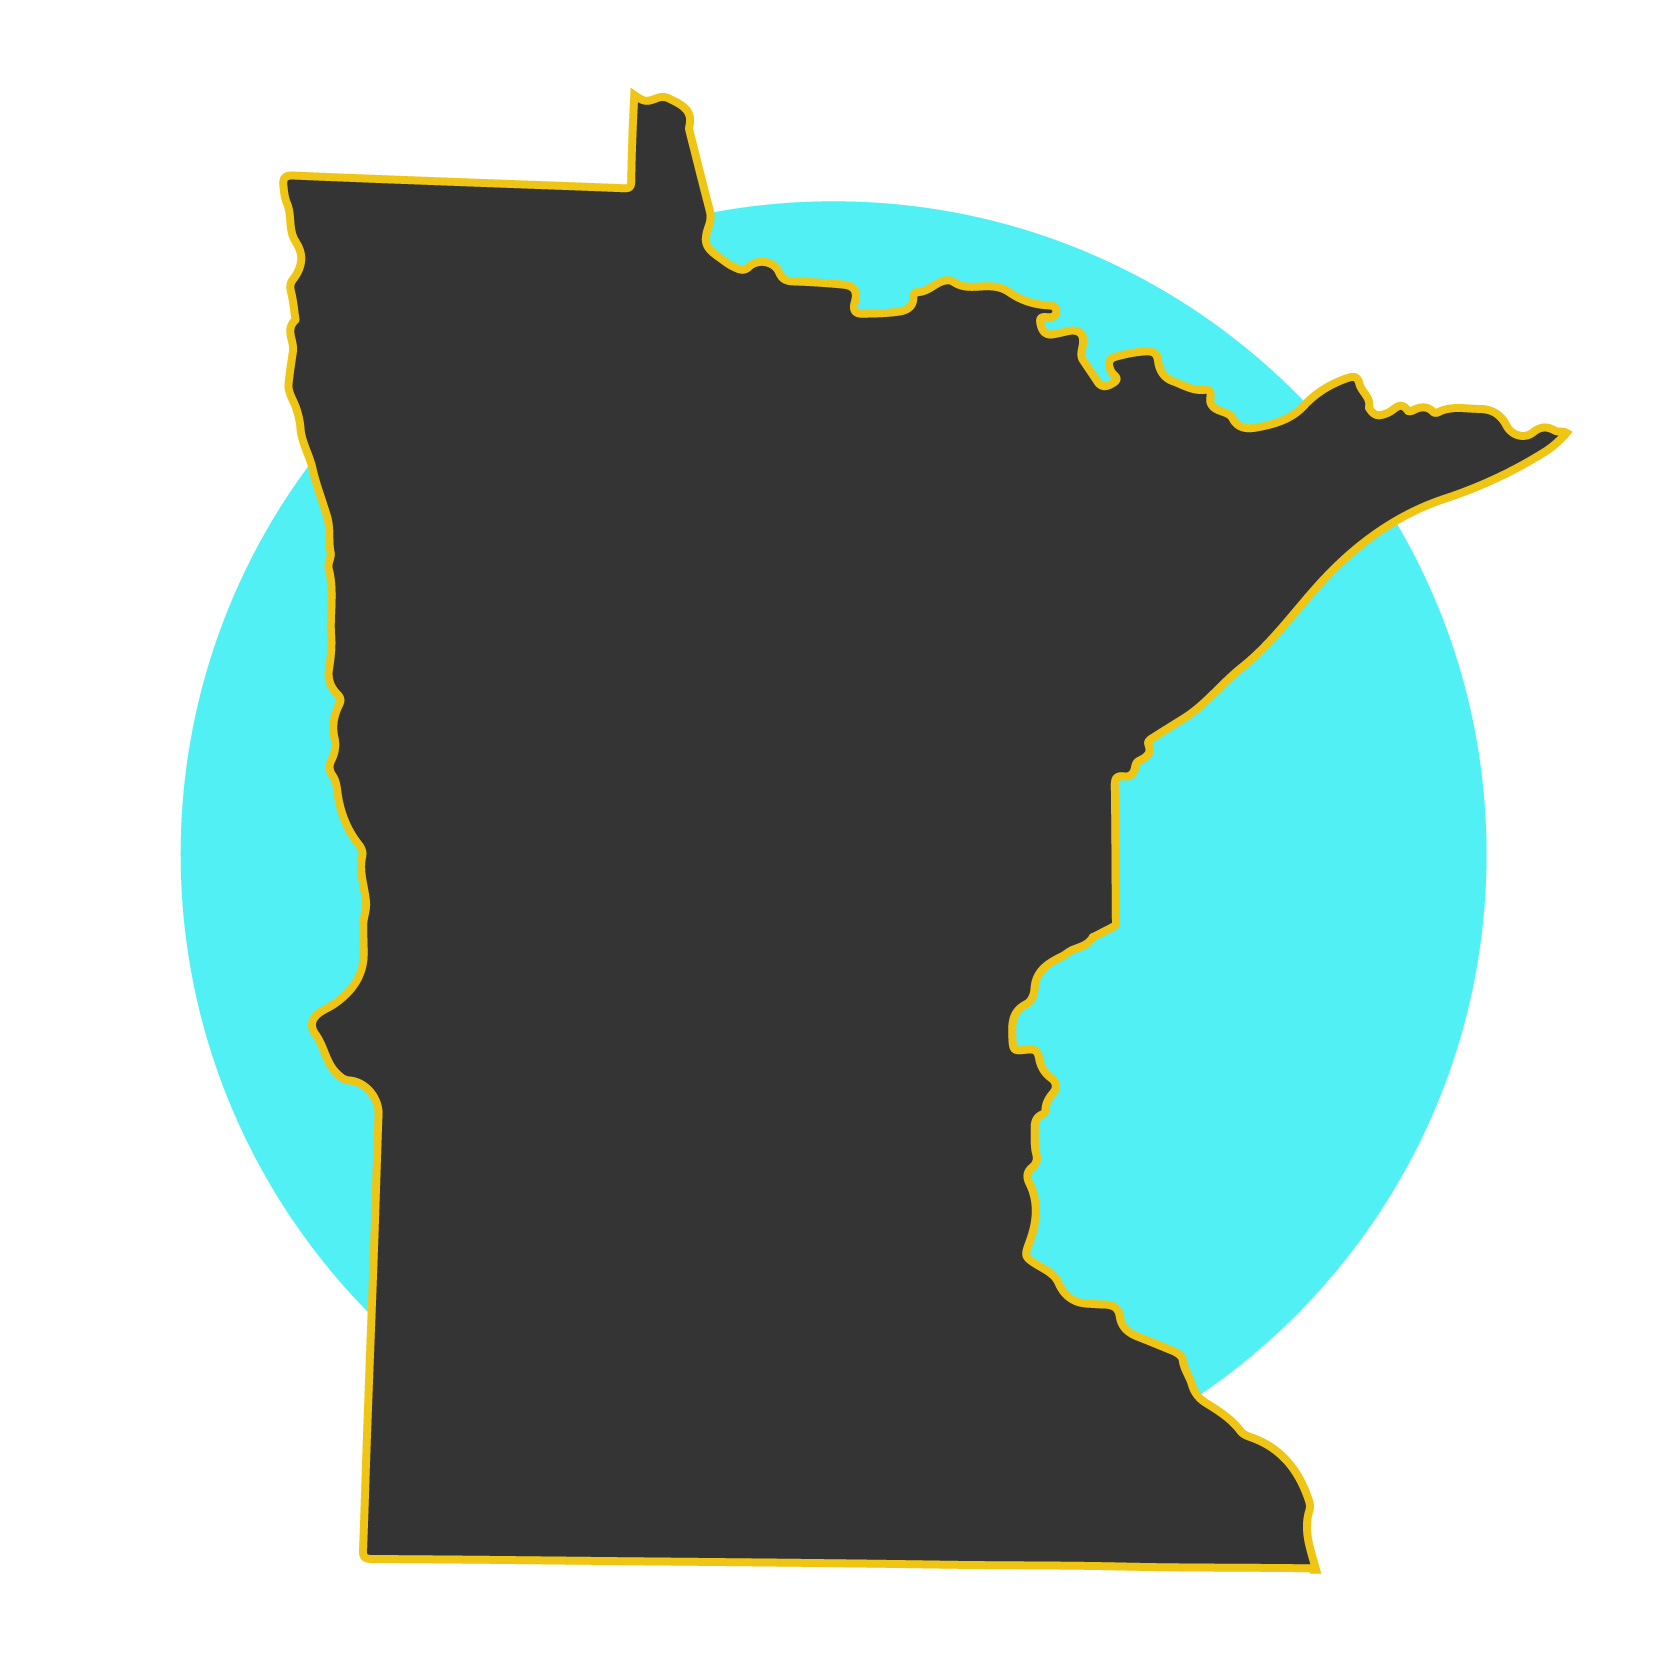 Minnesota Digital Fundraising State